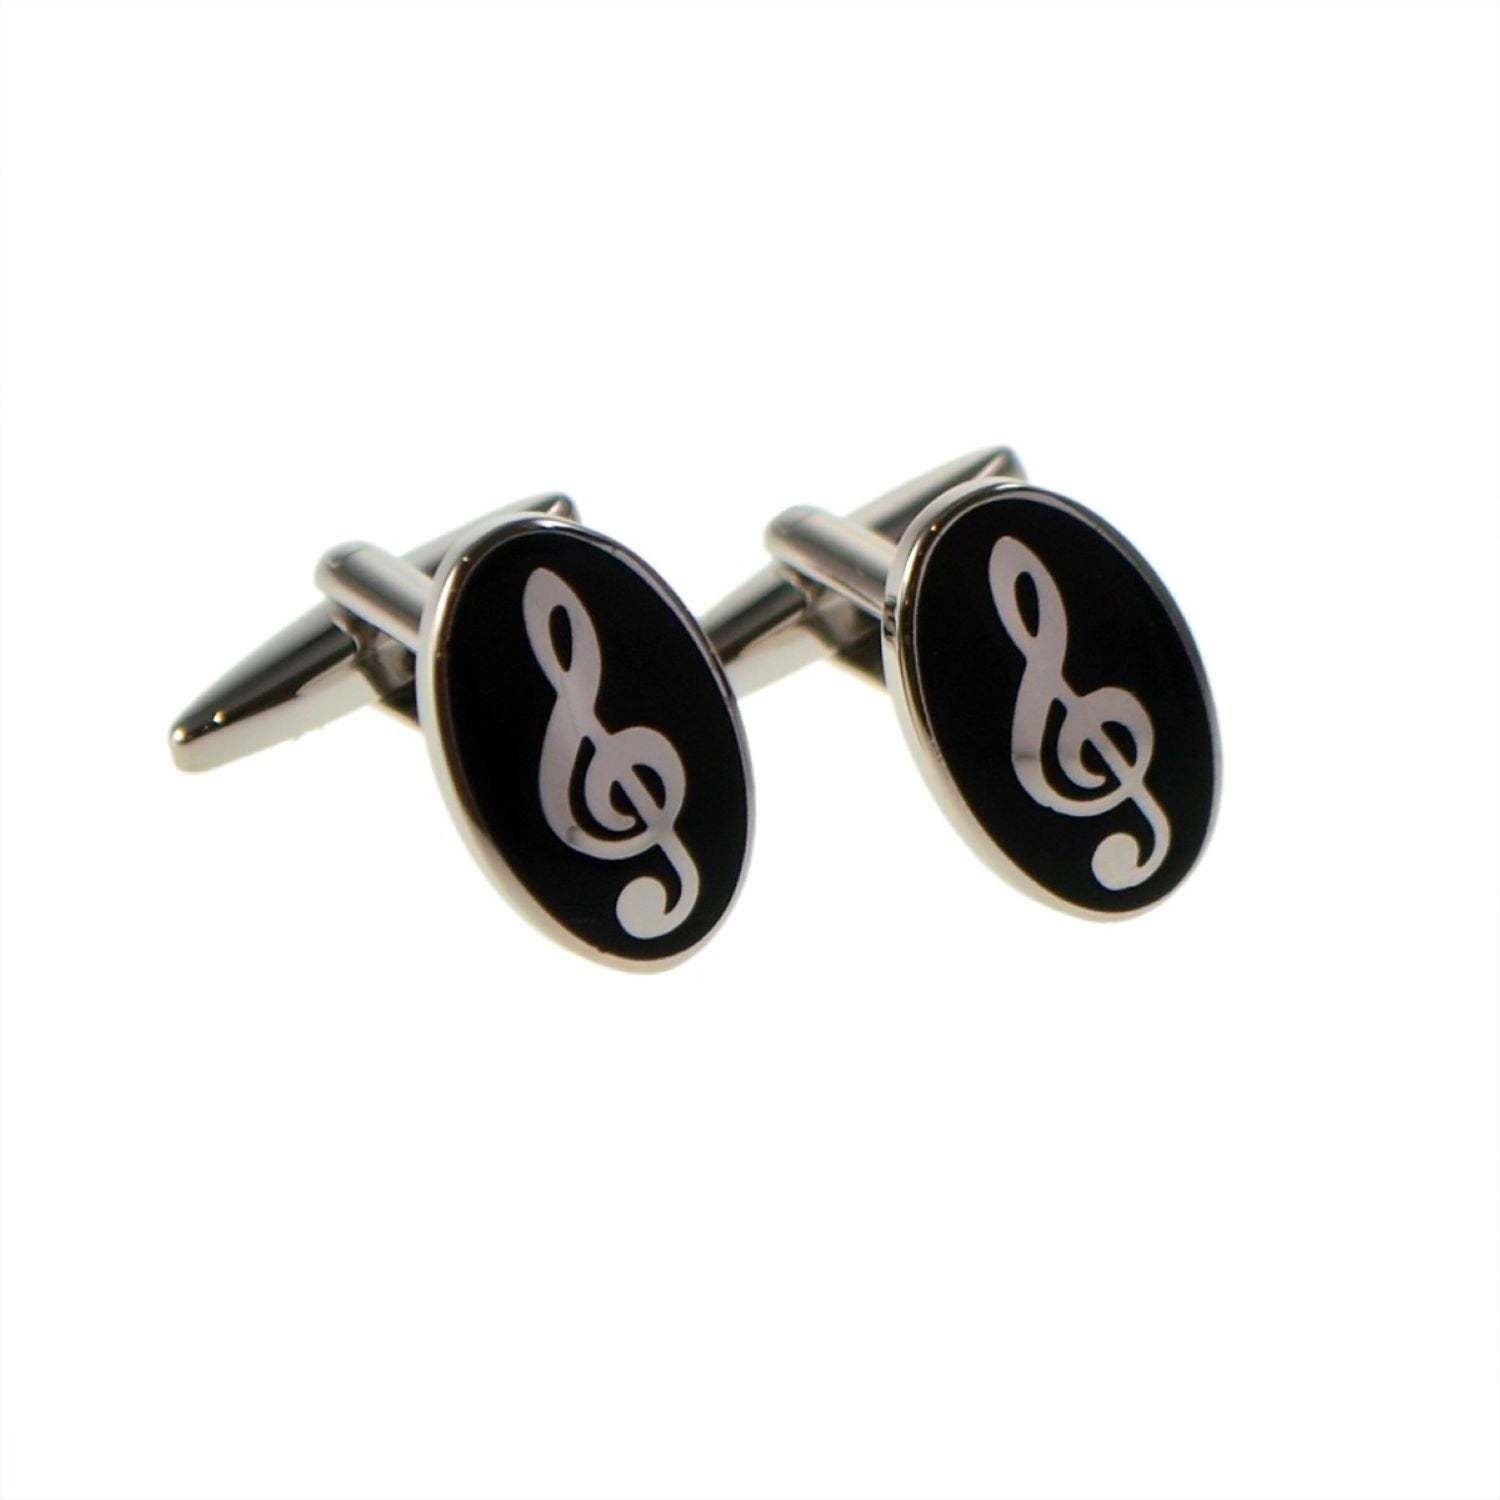 Oval Treble Clef Design cufflinks, silver and black design cufflinks gift boxed